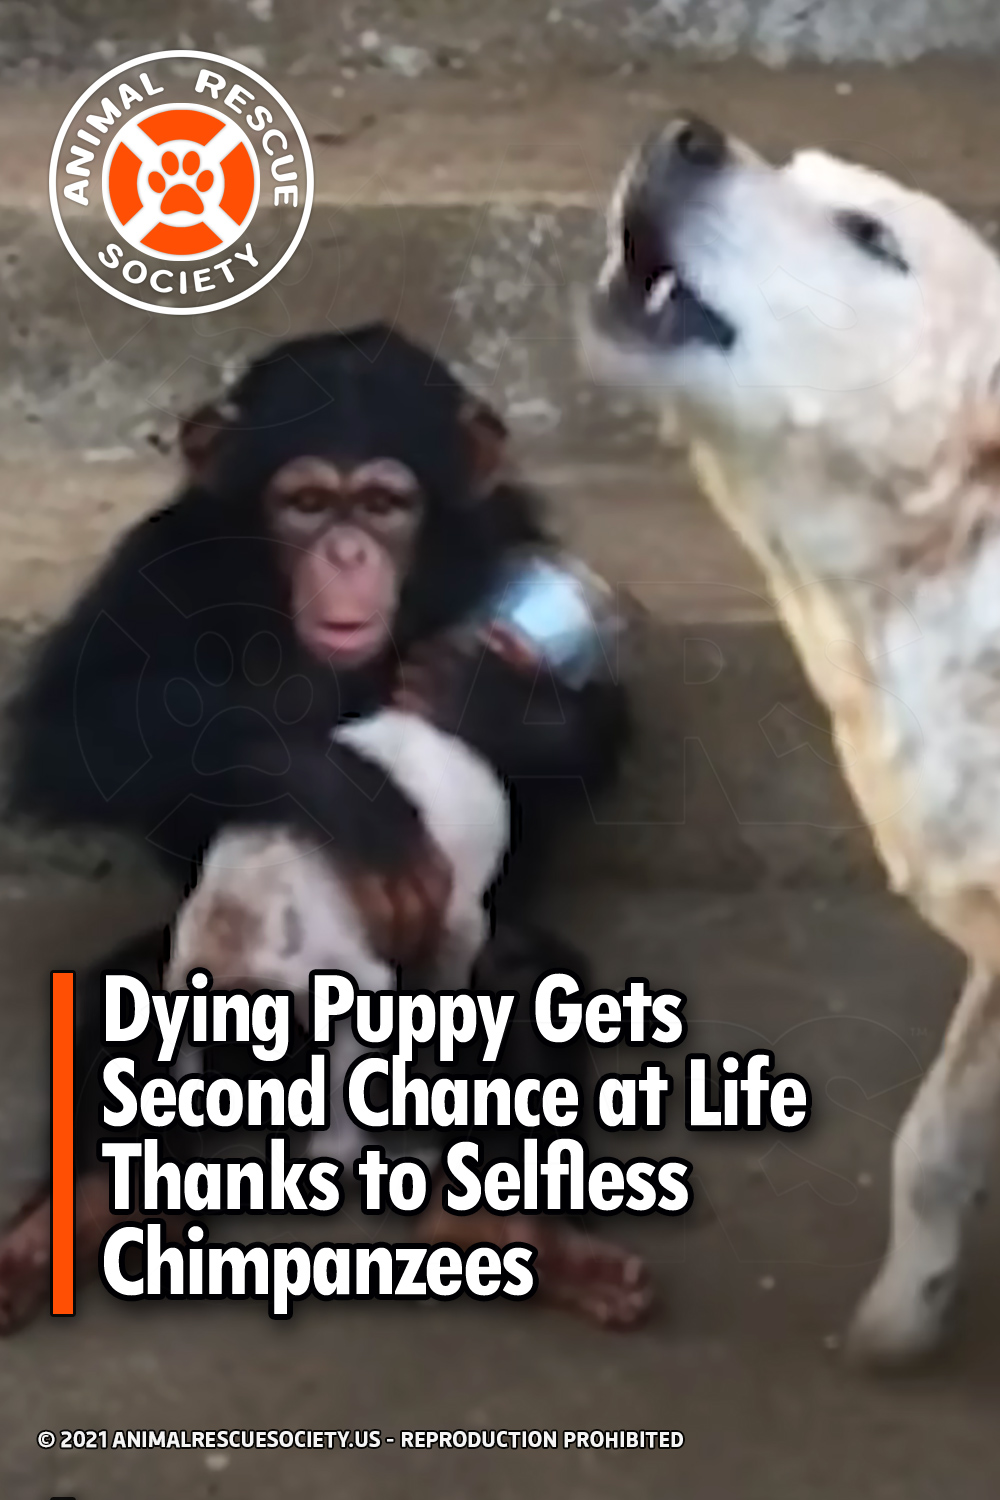 Dying Puppy Gets Second Chance at Life Thanks to Selfless Chimpanzees